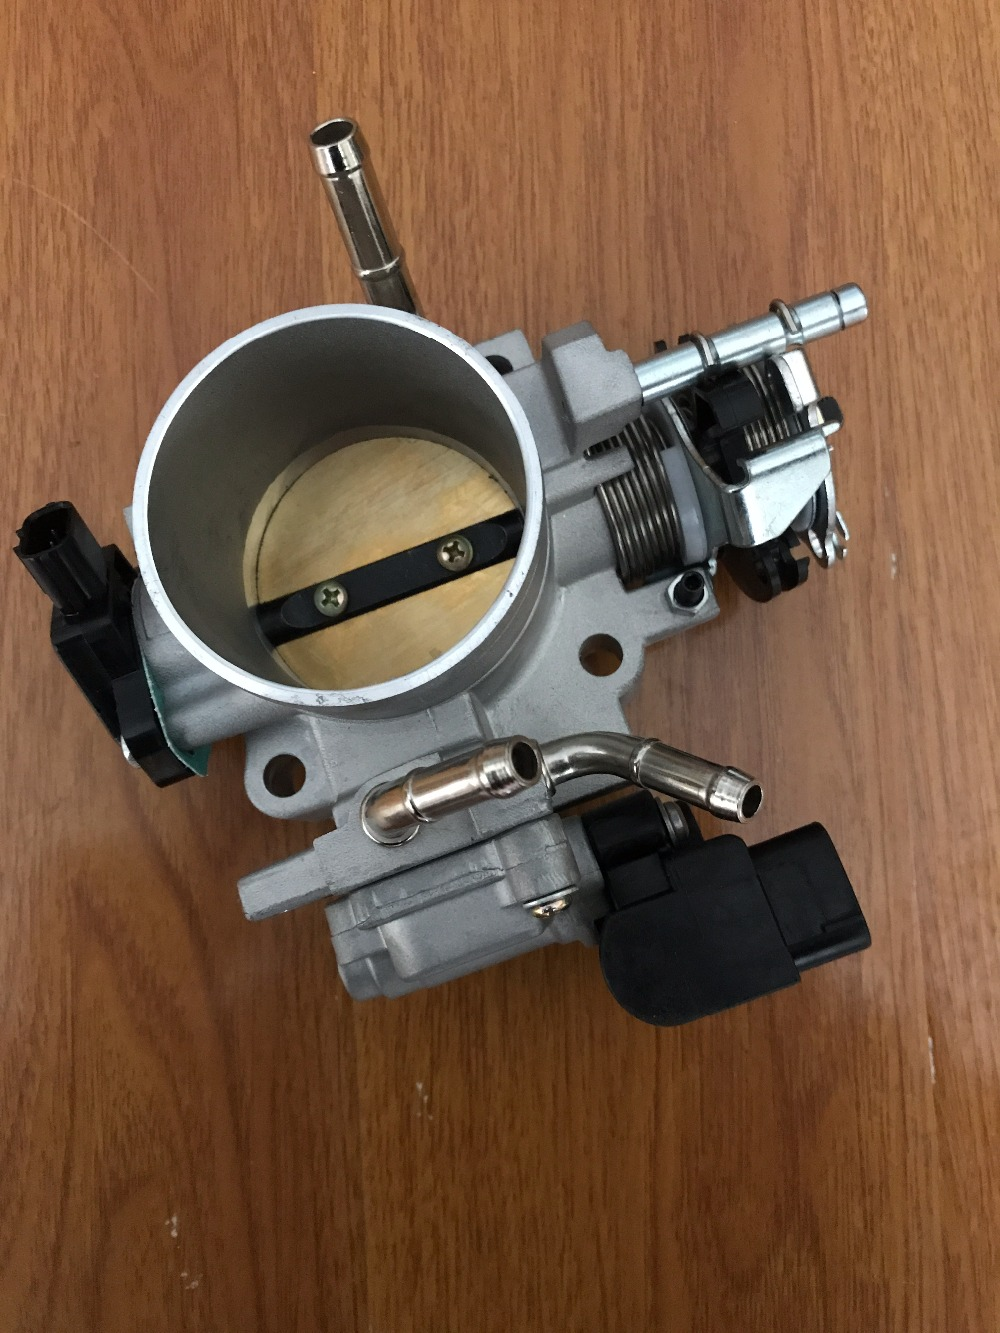 Cable Drive Throttle Body For Honda Accord DX LX EX 2.4L 2003-2005 vr 70mm throttle body tps throttle body position sensor for honda b16 b18 d16 f22 b20 d b h f ef eg ek dc2 h22 d15 d16 page 11